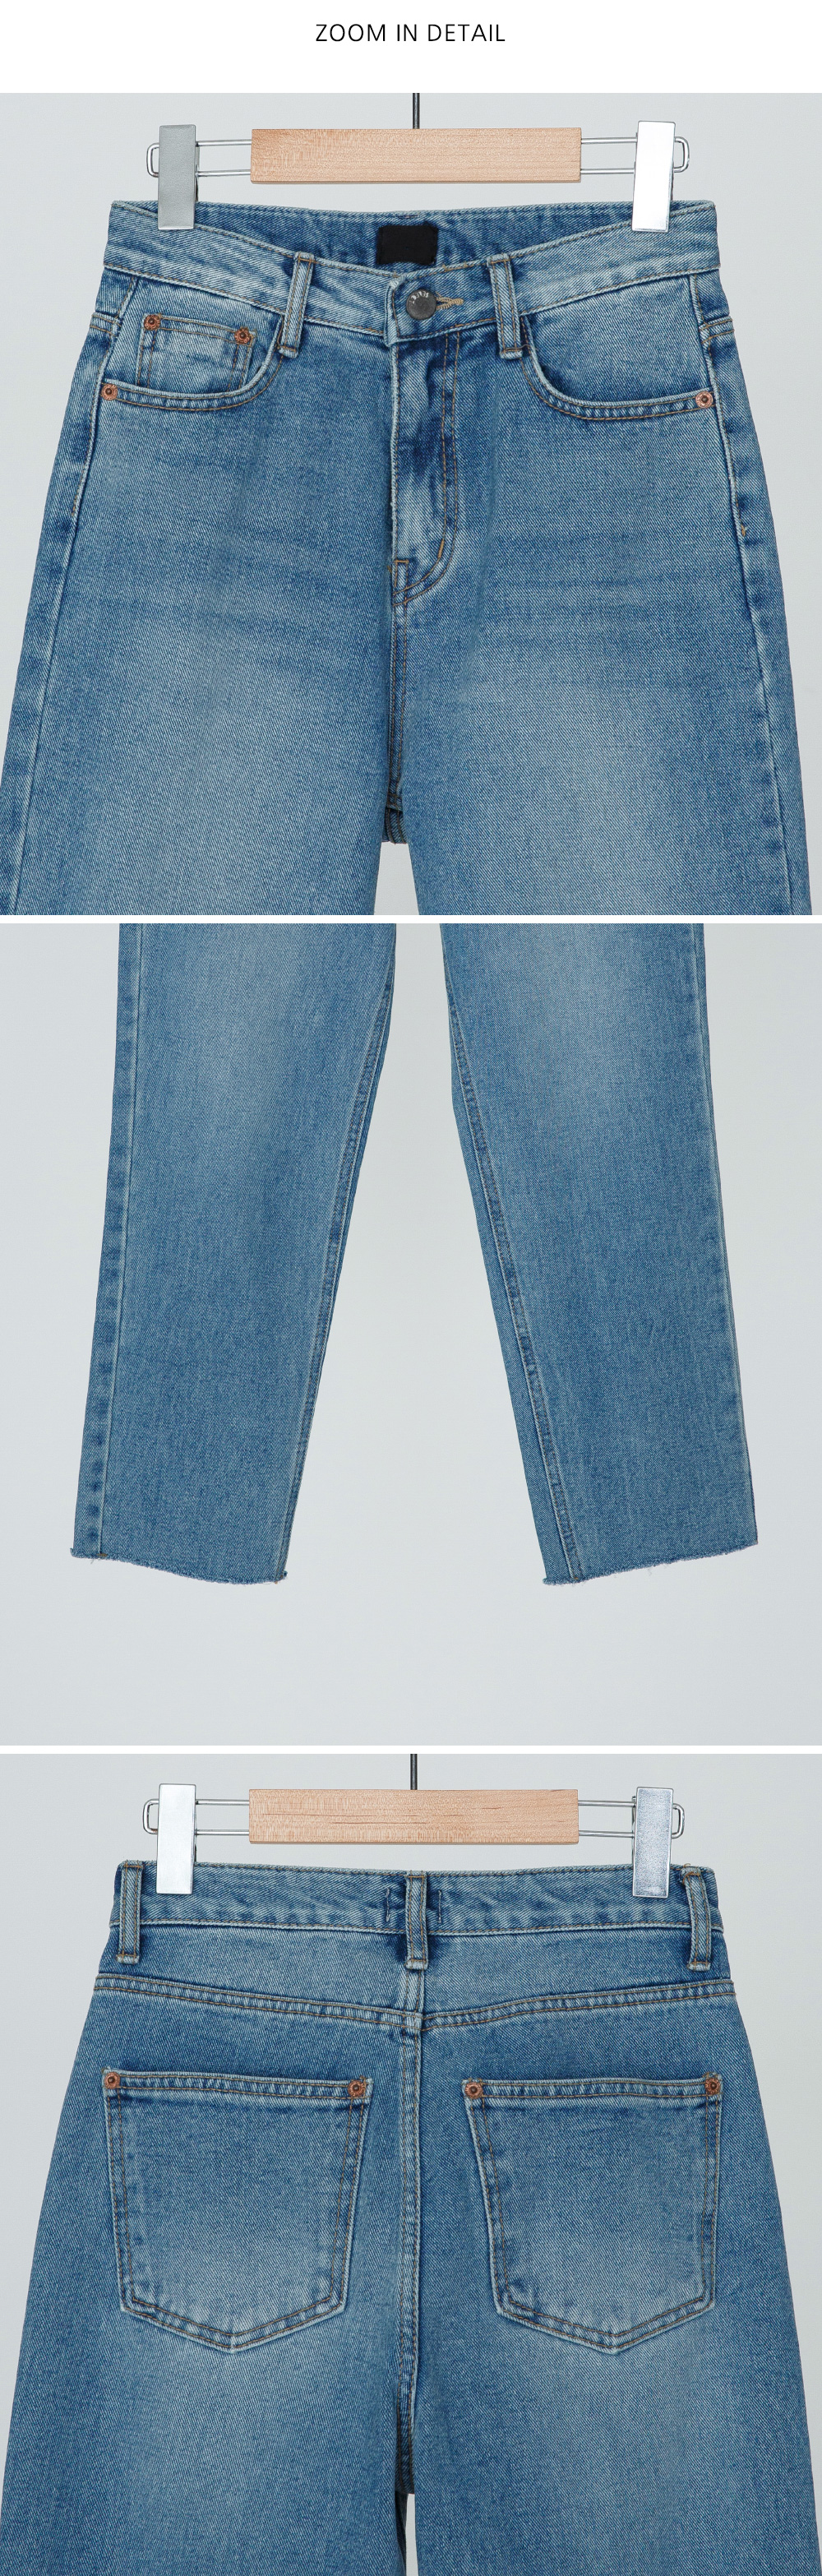 High West Cut 9 Jeans